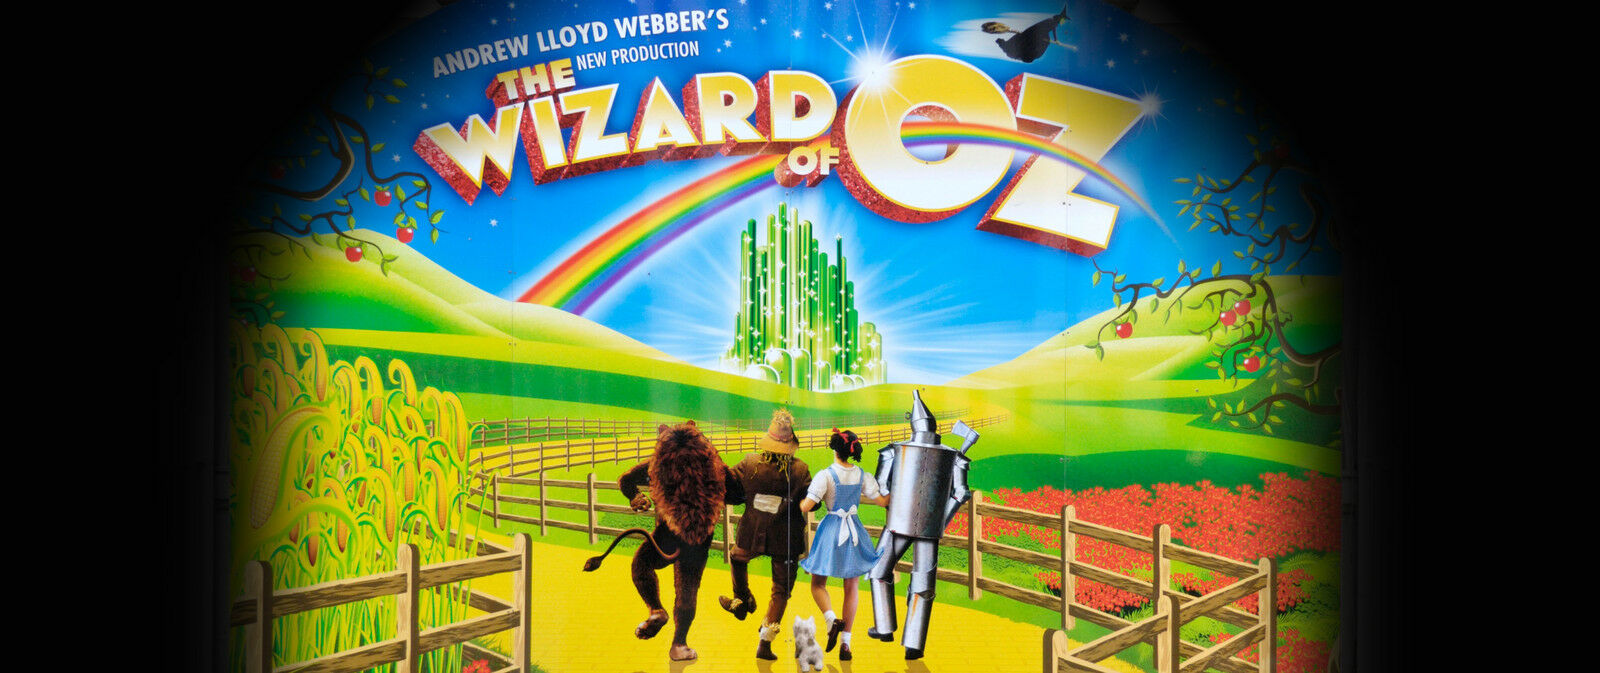 Wizard of Oz Davenport